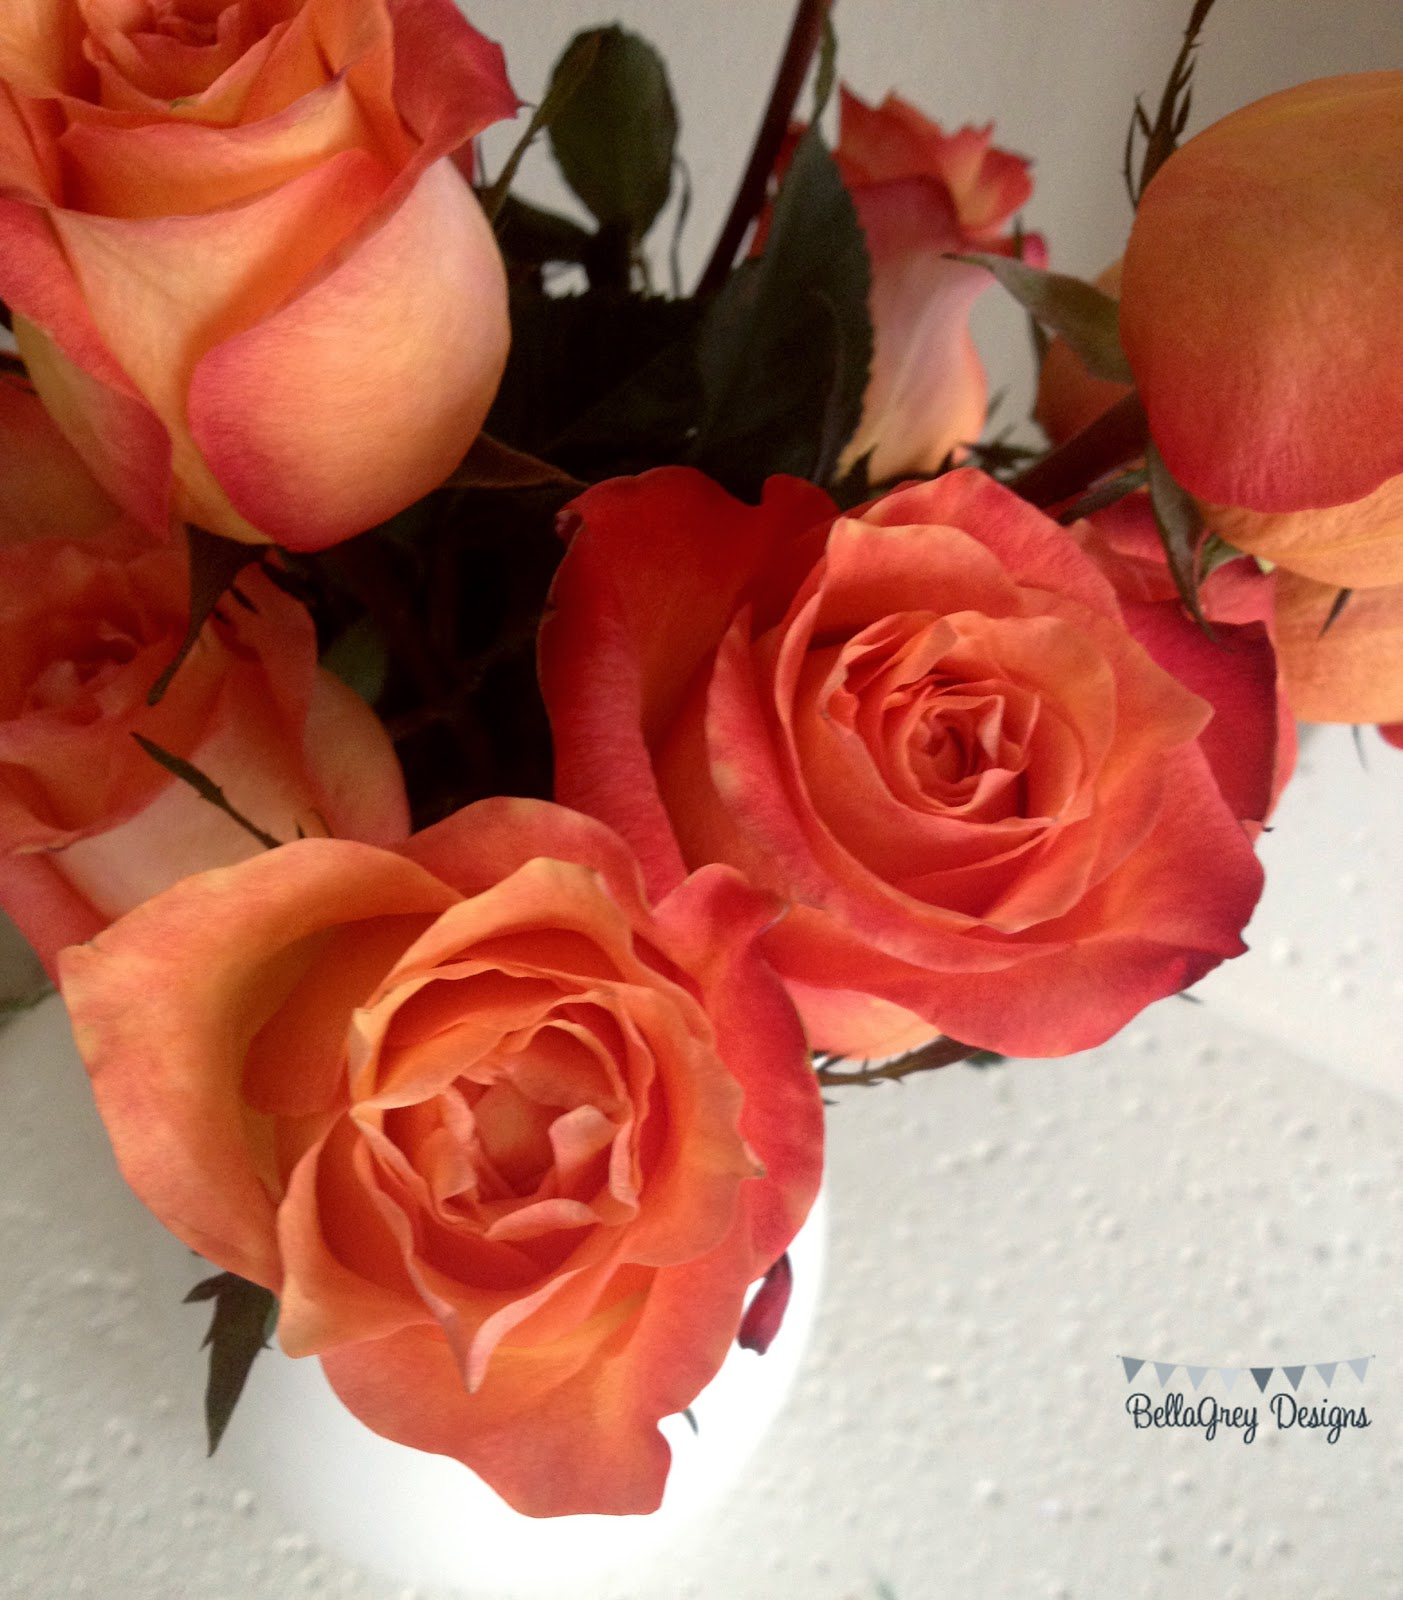 Bellagrey designs beautiful flowers from the bouqs co the bouqs co flowers are vibrant and gorgeous this bouquet is called dawn and i chose it because it reminds me of fall although here in dallas it is very izmirmasajfo